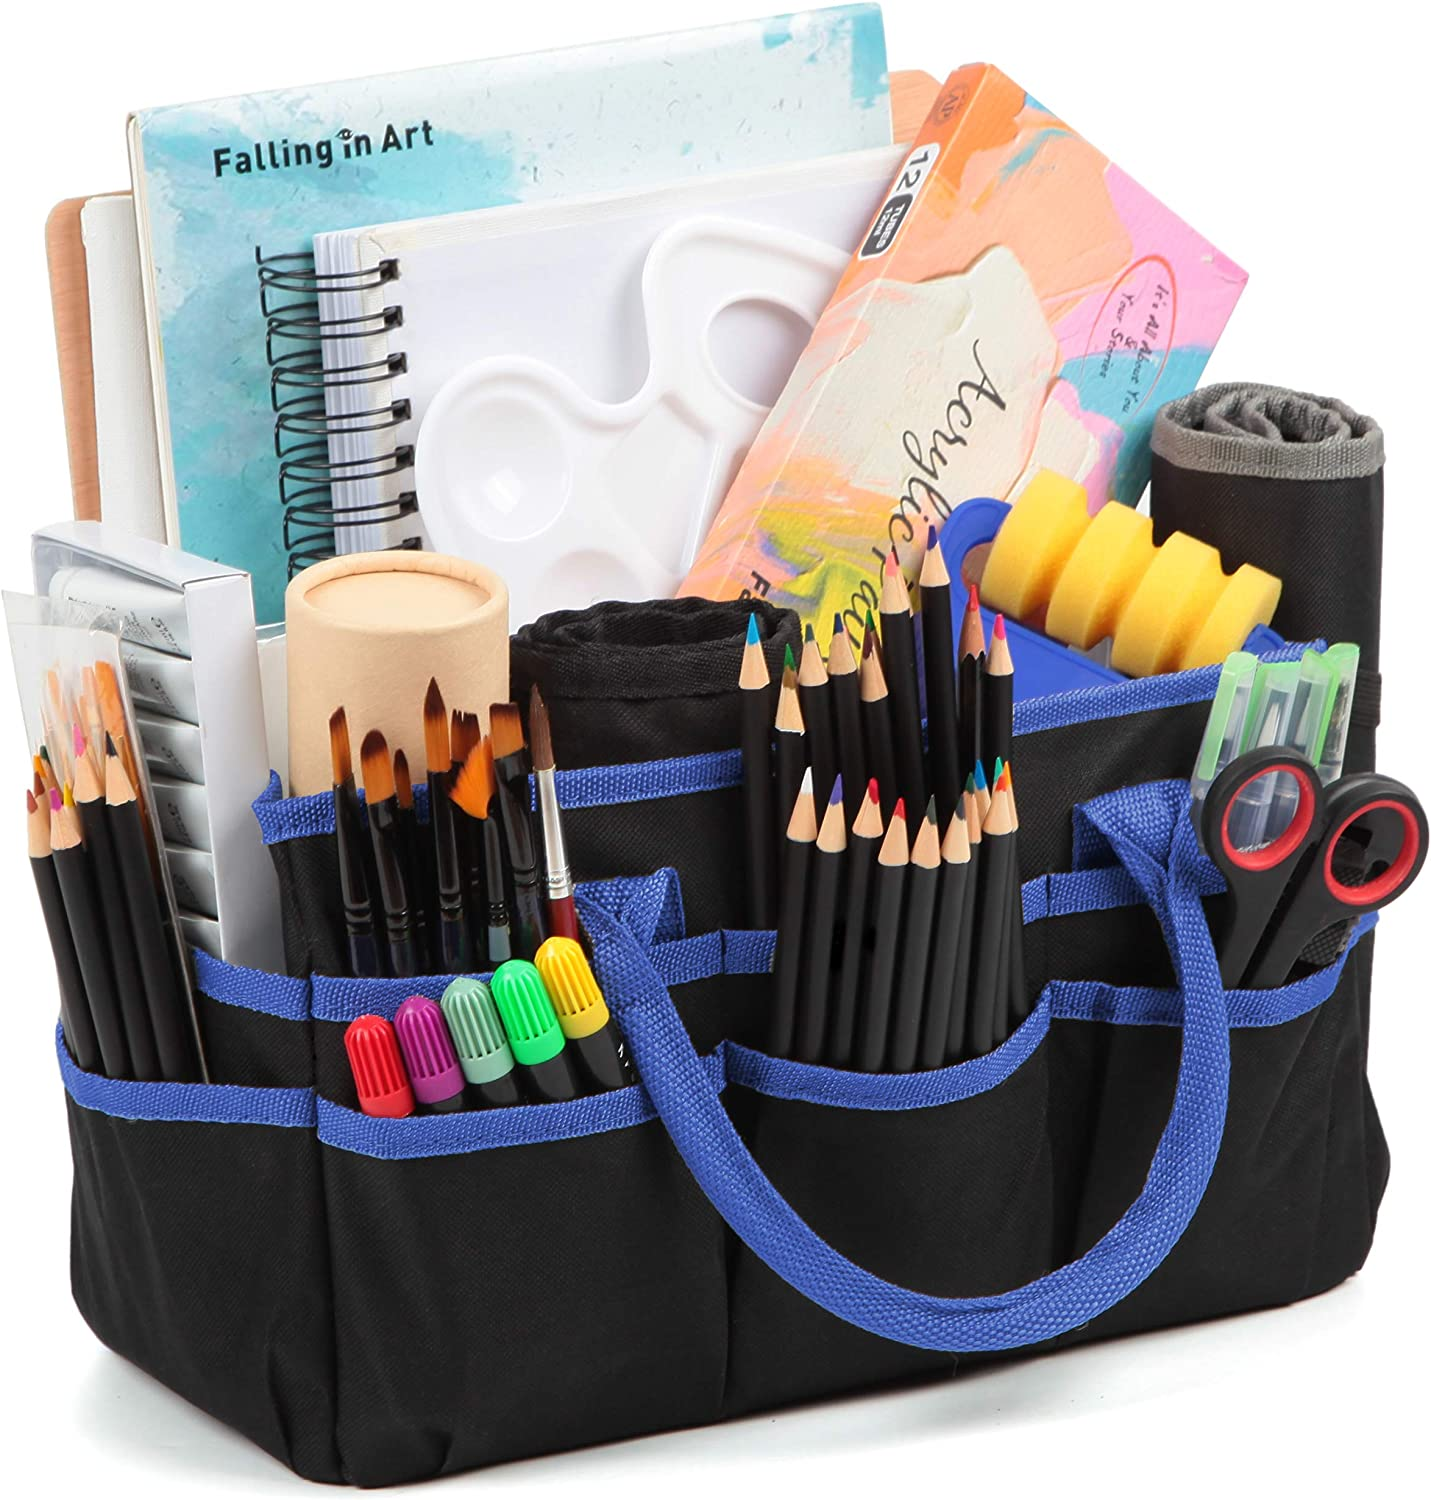 Jjring Craft and Art Organizer Tote Bag Limited price Blue - 600D Fabric Nylon Ranking TOP4